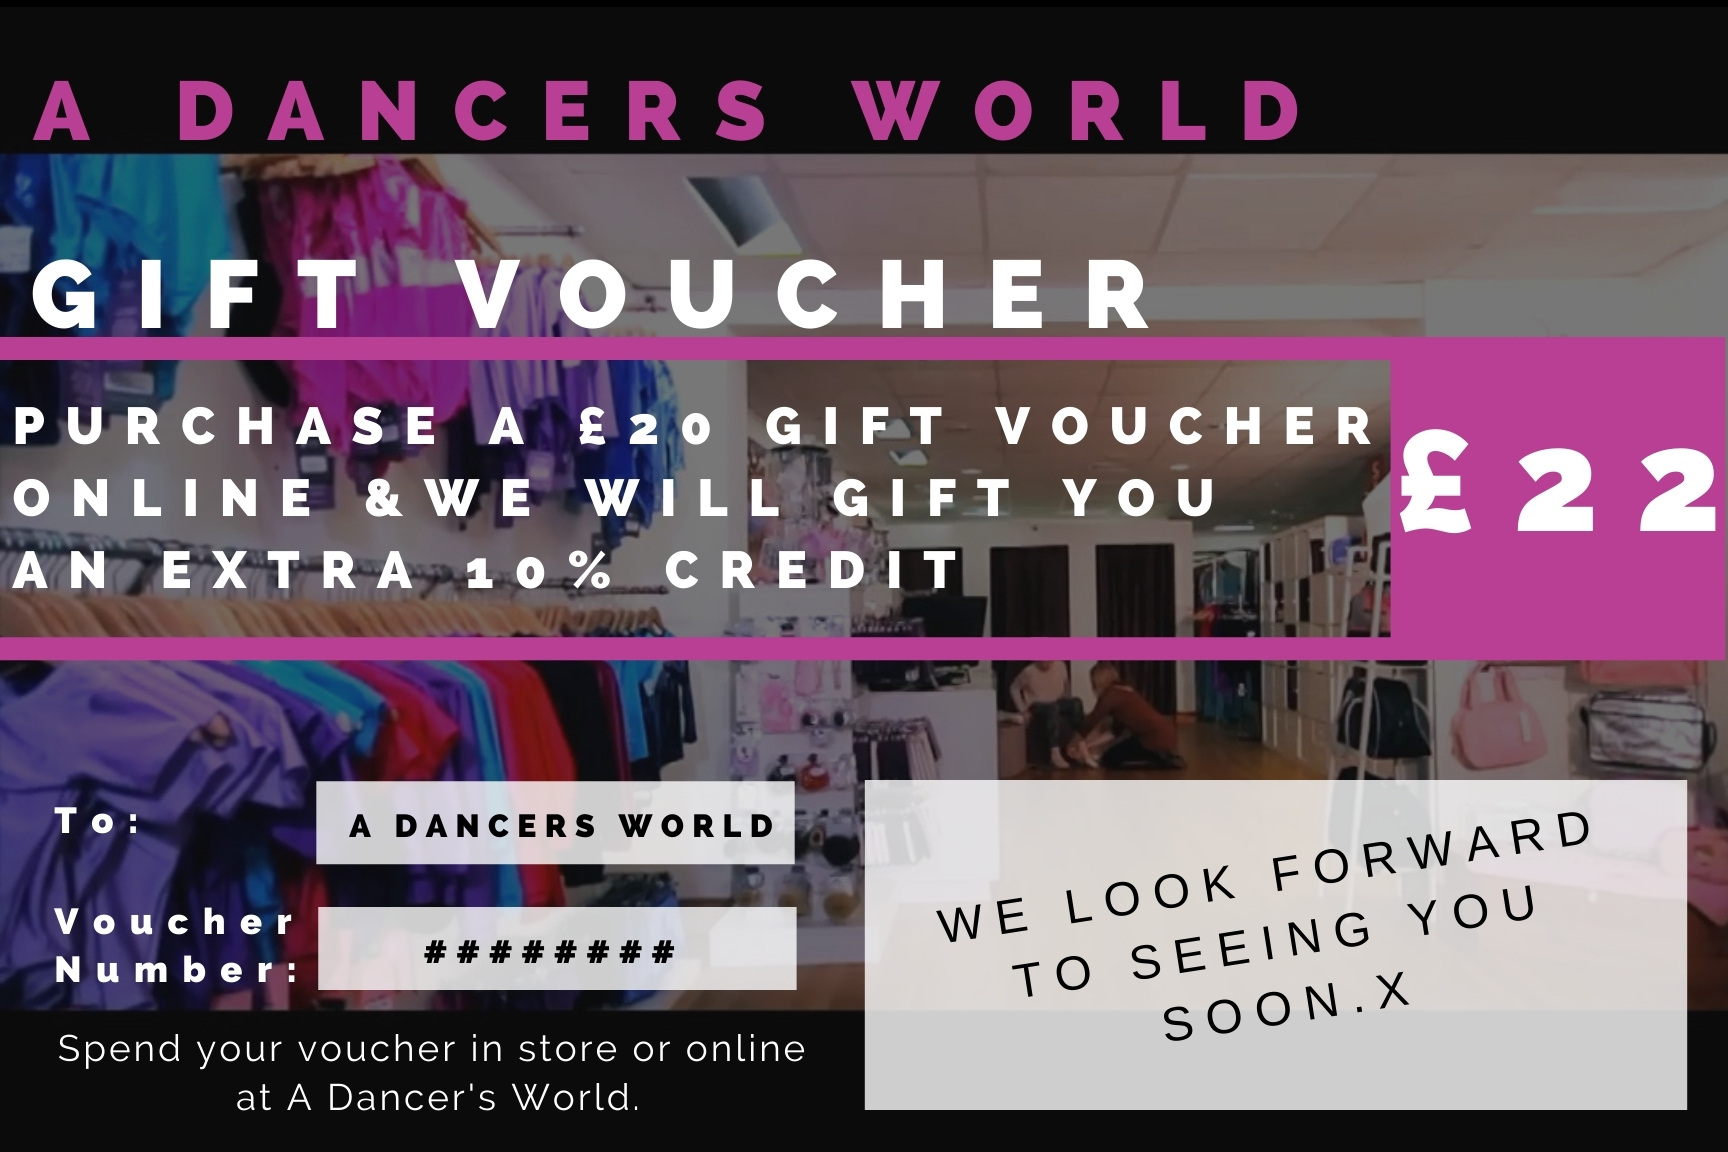 Gifted £2 on purchases of £20 voucher